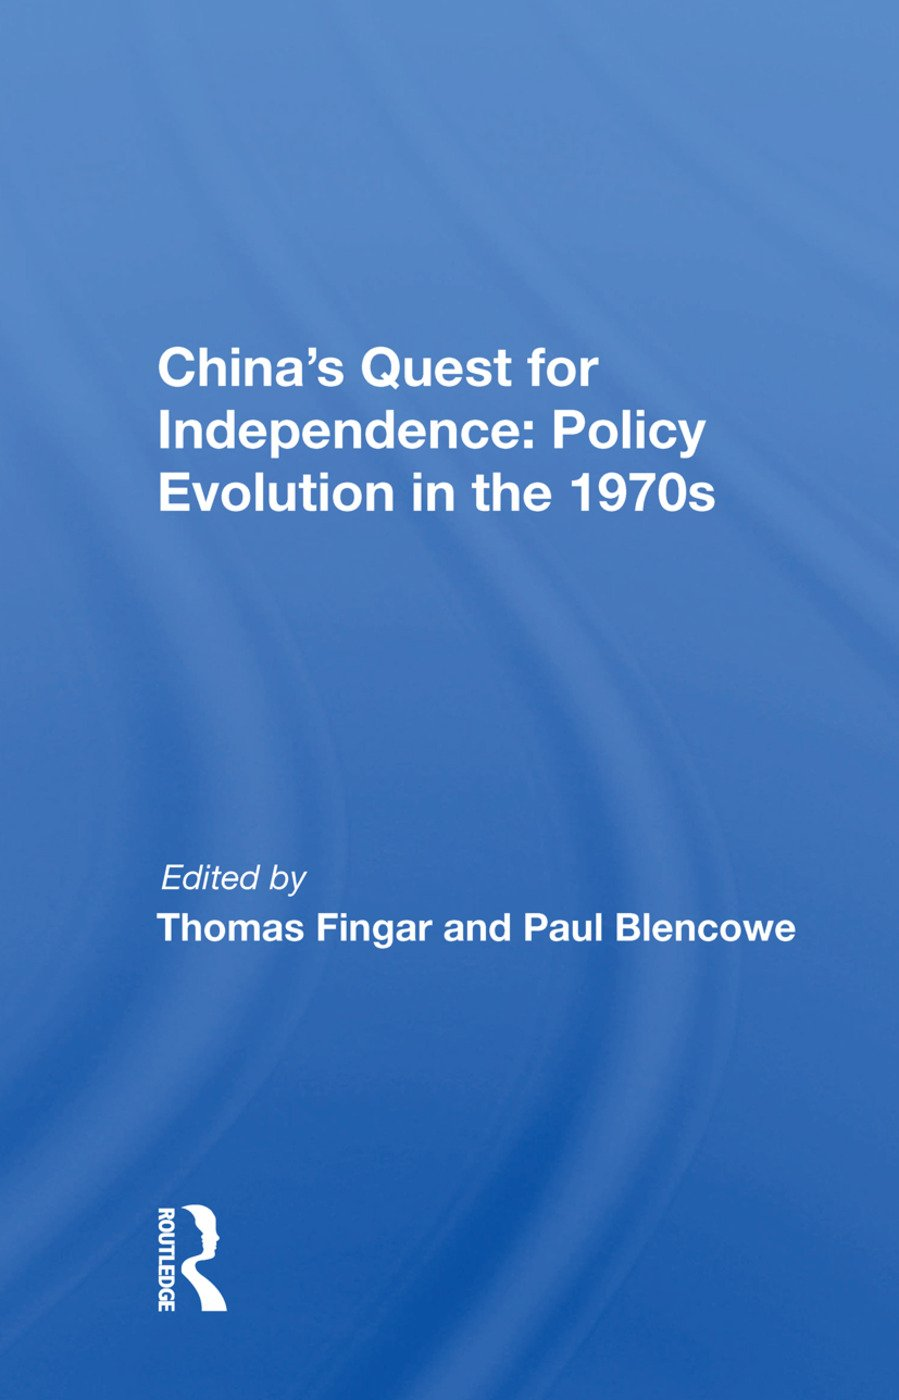 China's Quest for Independence: Policy Evolution in the 1970s